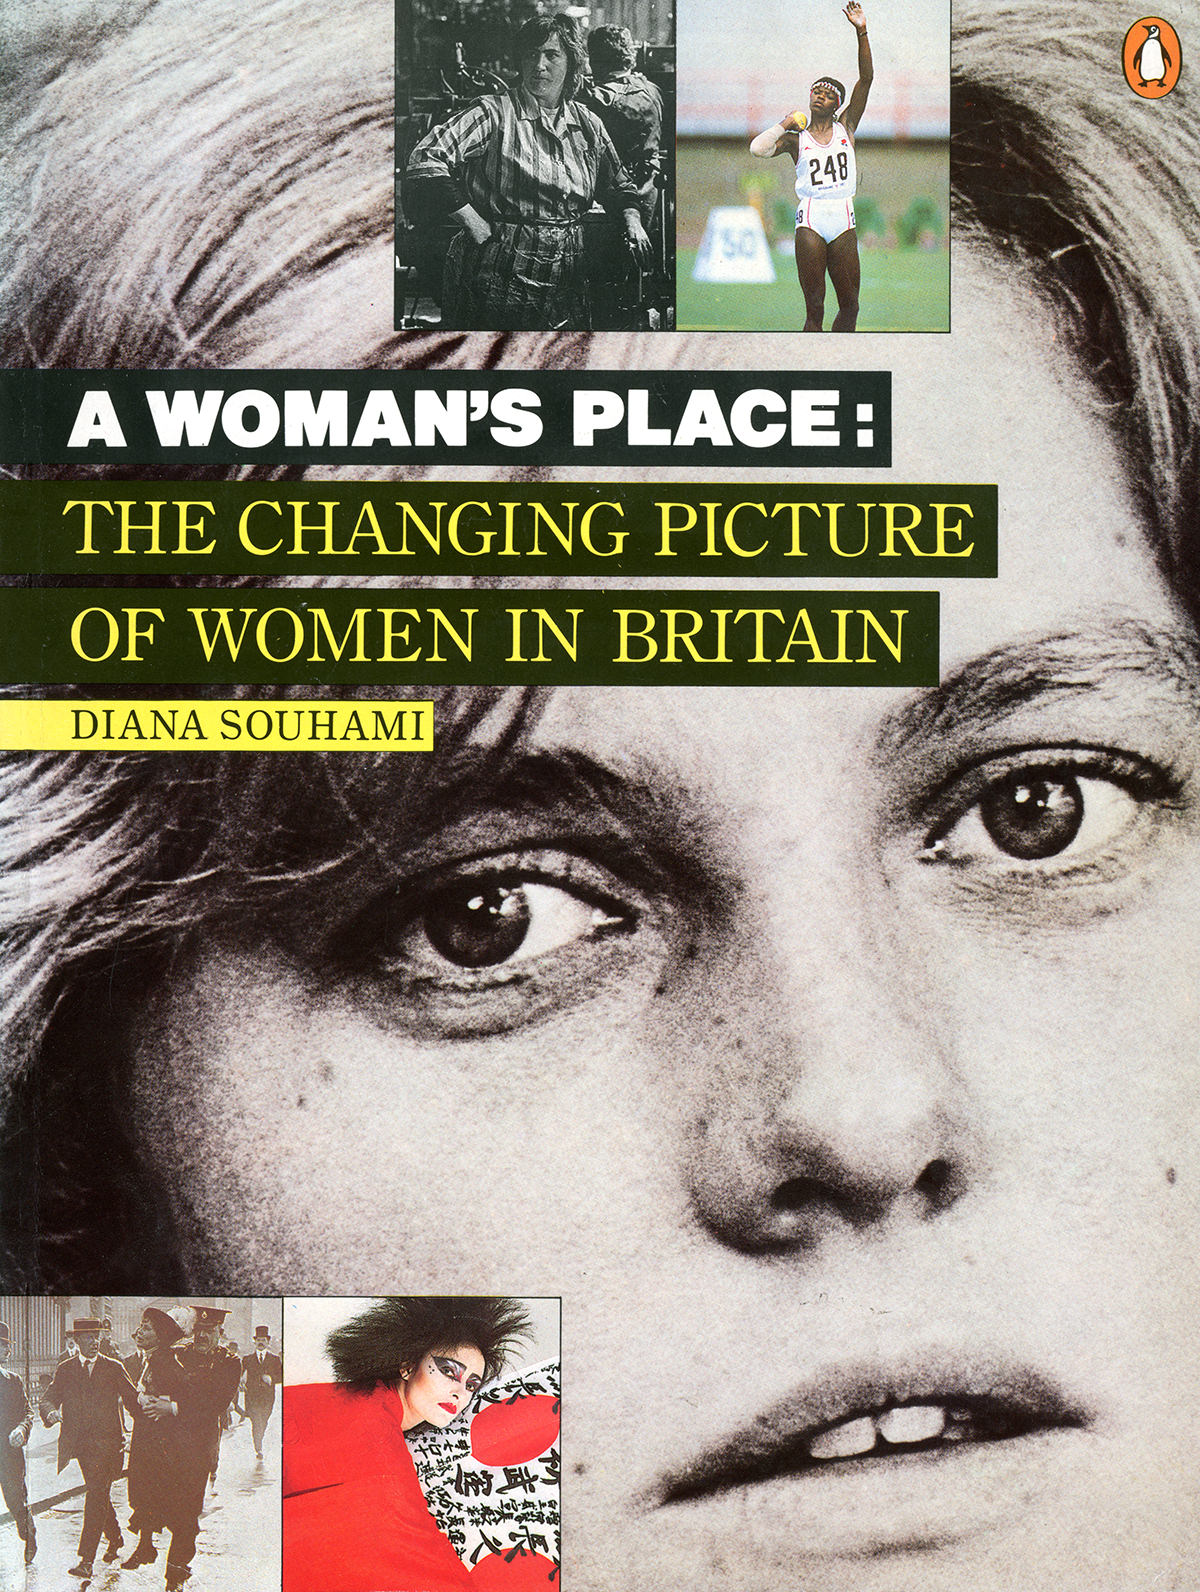 'A Woman's Place' by Diana Souhami